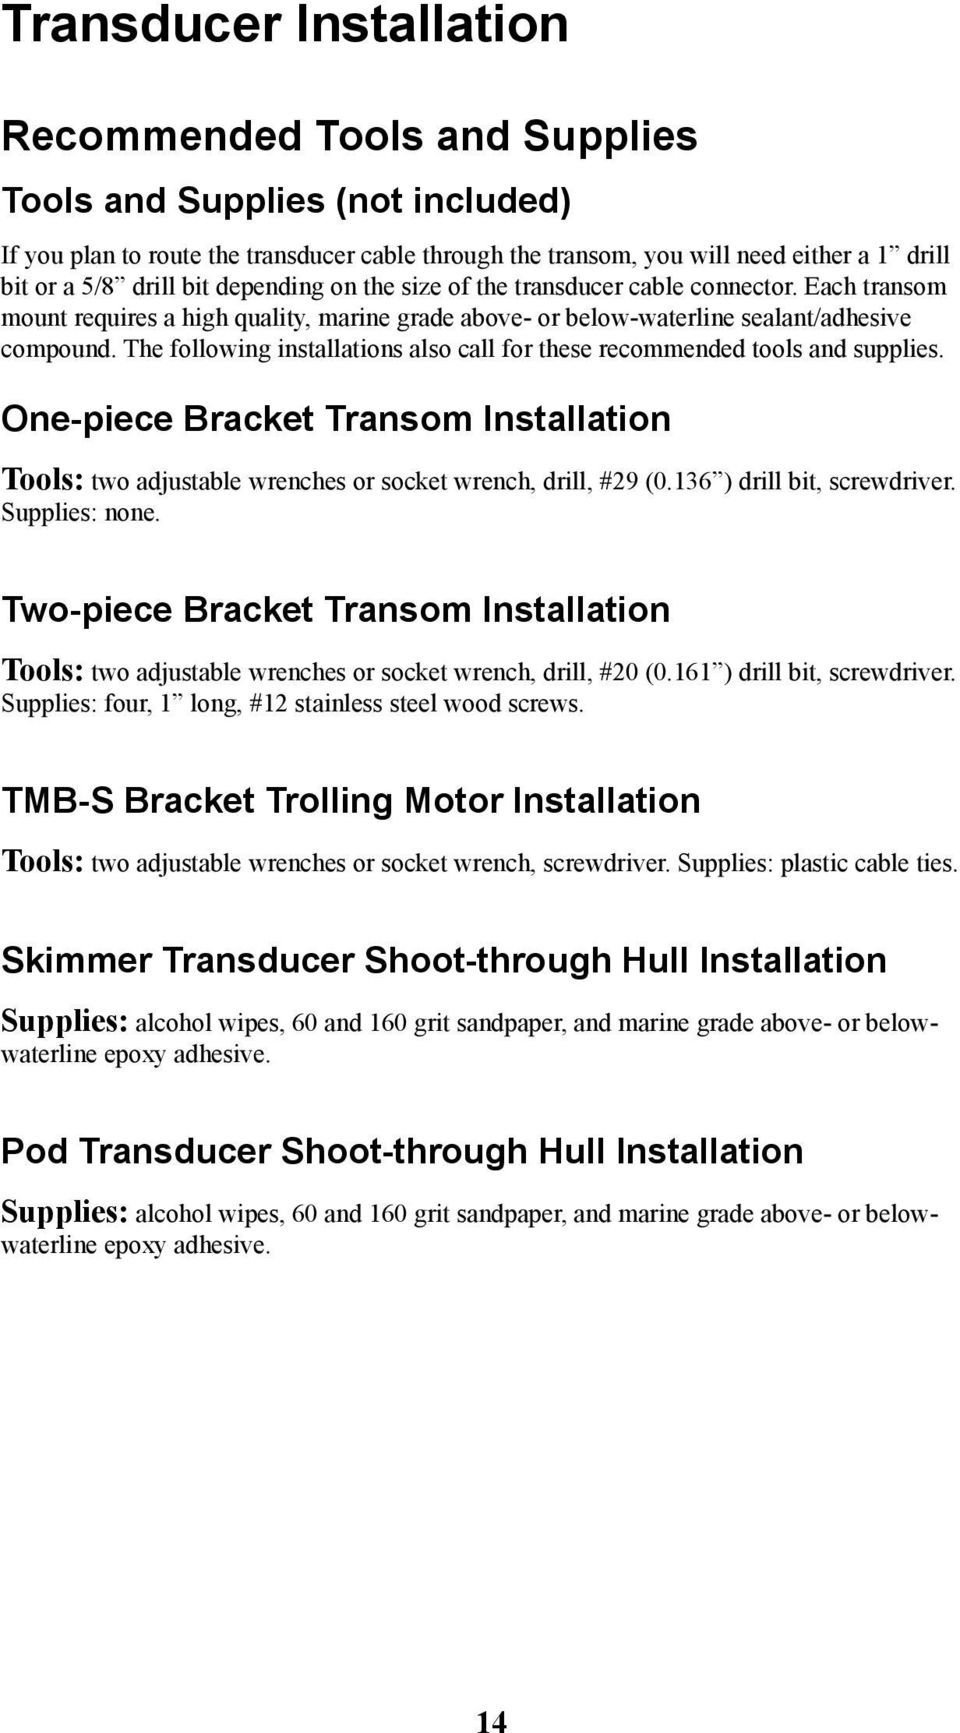 Hds Series Installation Manual Pdf Cuda 168 Transducer Wire Diagram The Following Installations Also Call For These Recommended Tools And Supplies One Piece Bracket